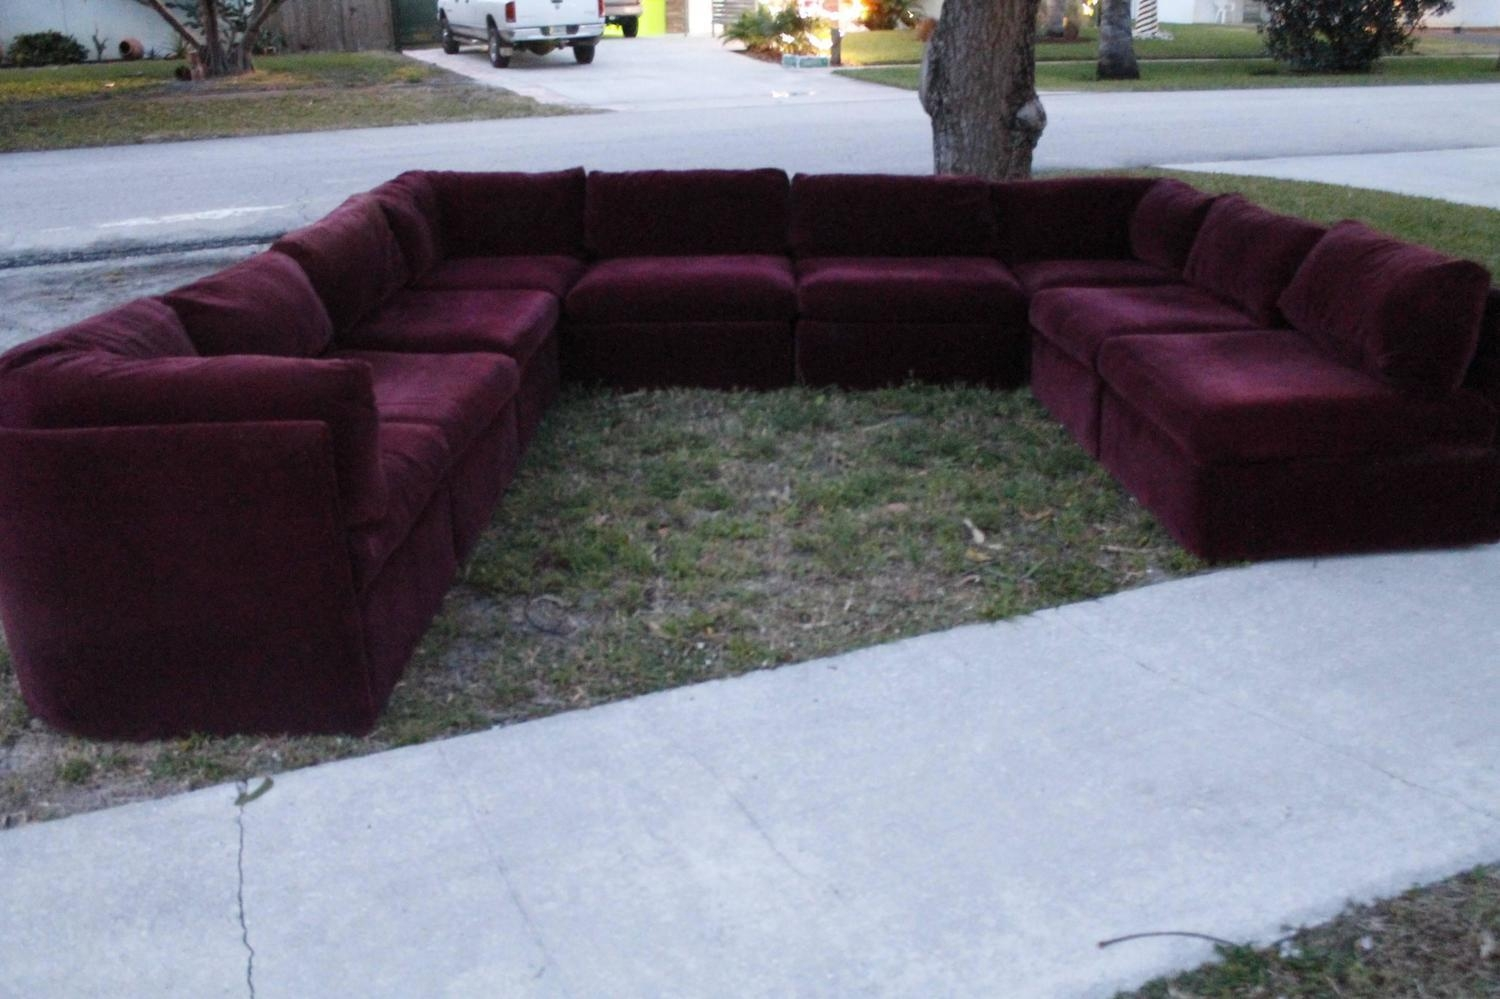 Vintage Milo Baughman Thayer Coggin 9 Piece Sectional Sofa In Burgundy Sectional Sofas (Image 20 of 20)